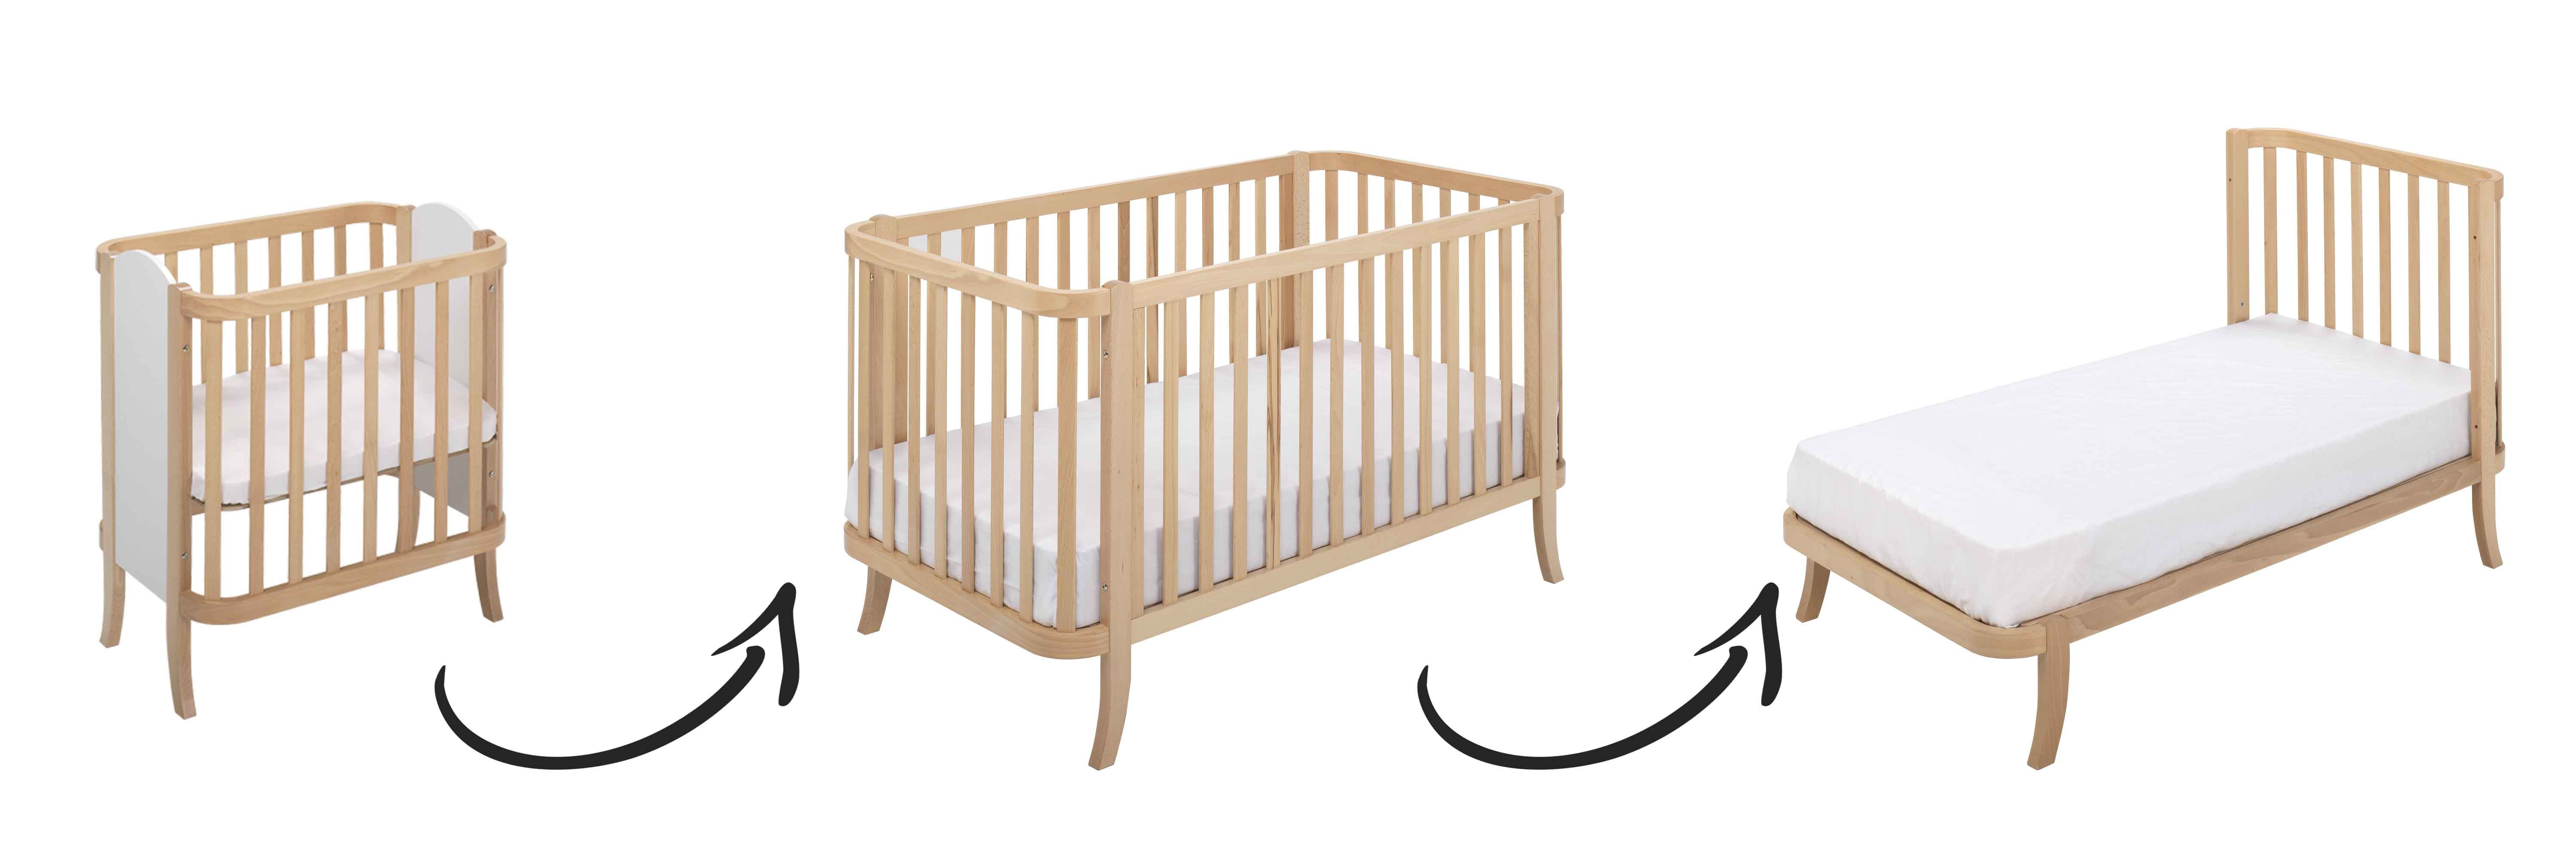 modern why on table ideas changing toddler nursery bed everyones convertible crib dresser constructed of everyone needs changer fosterboyspizza multipurpose s furniture me pretty rugged with plus baby size a full dream is room little buy